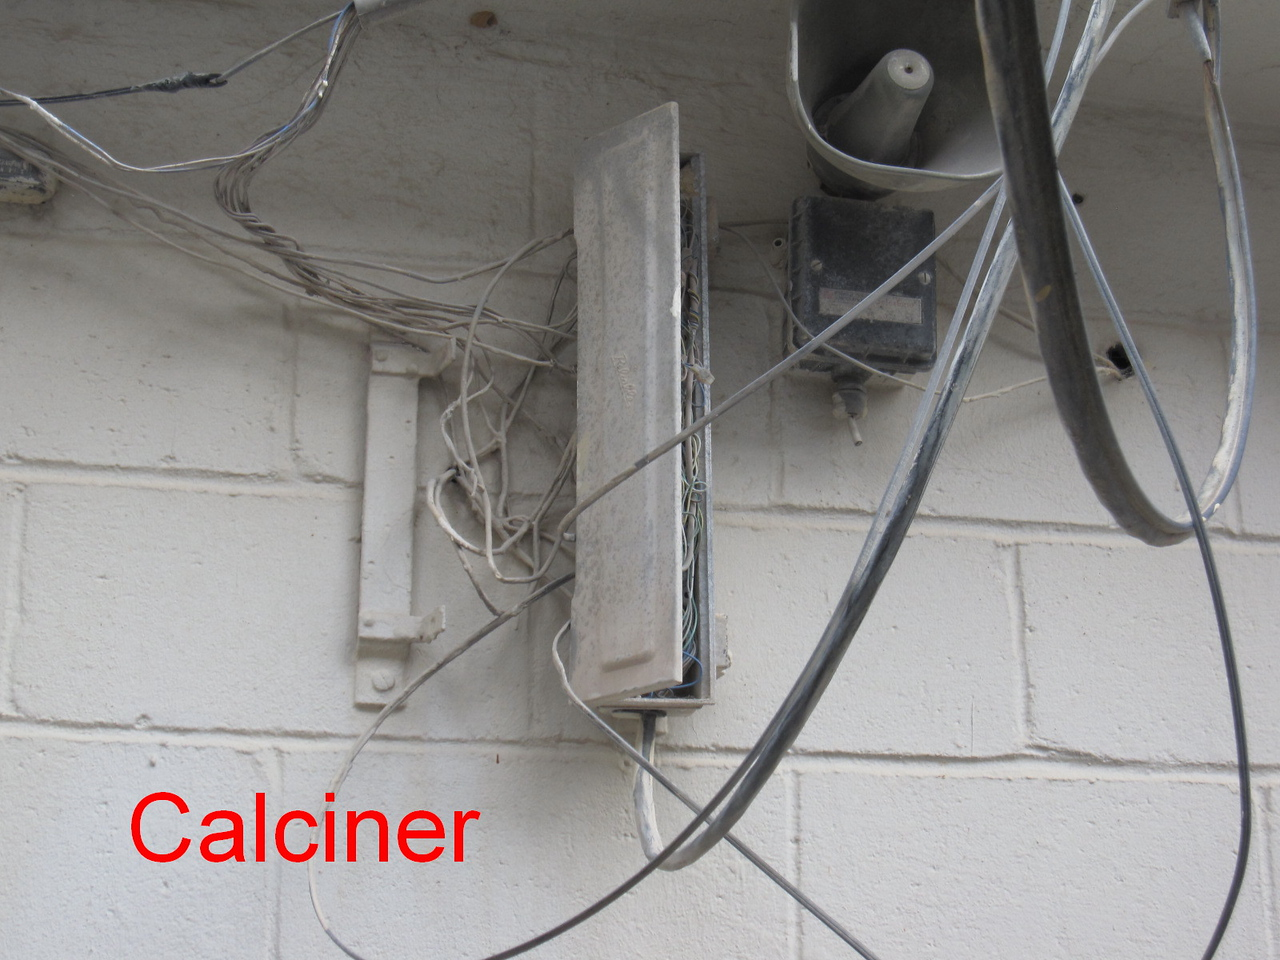 Calciner Before showing box on outside of building